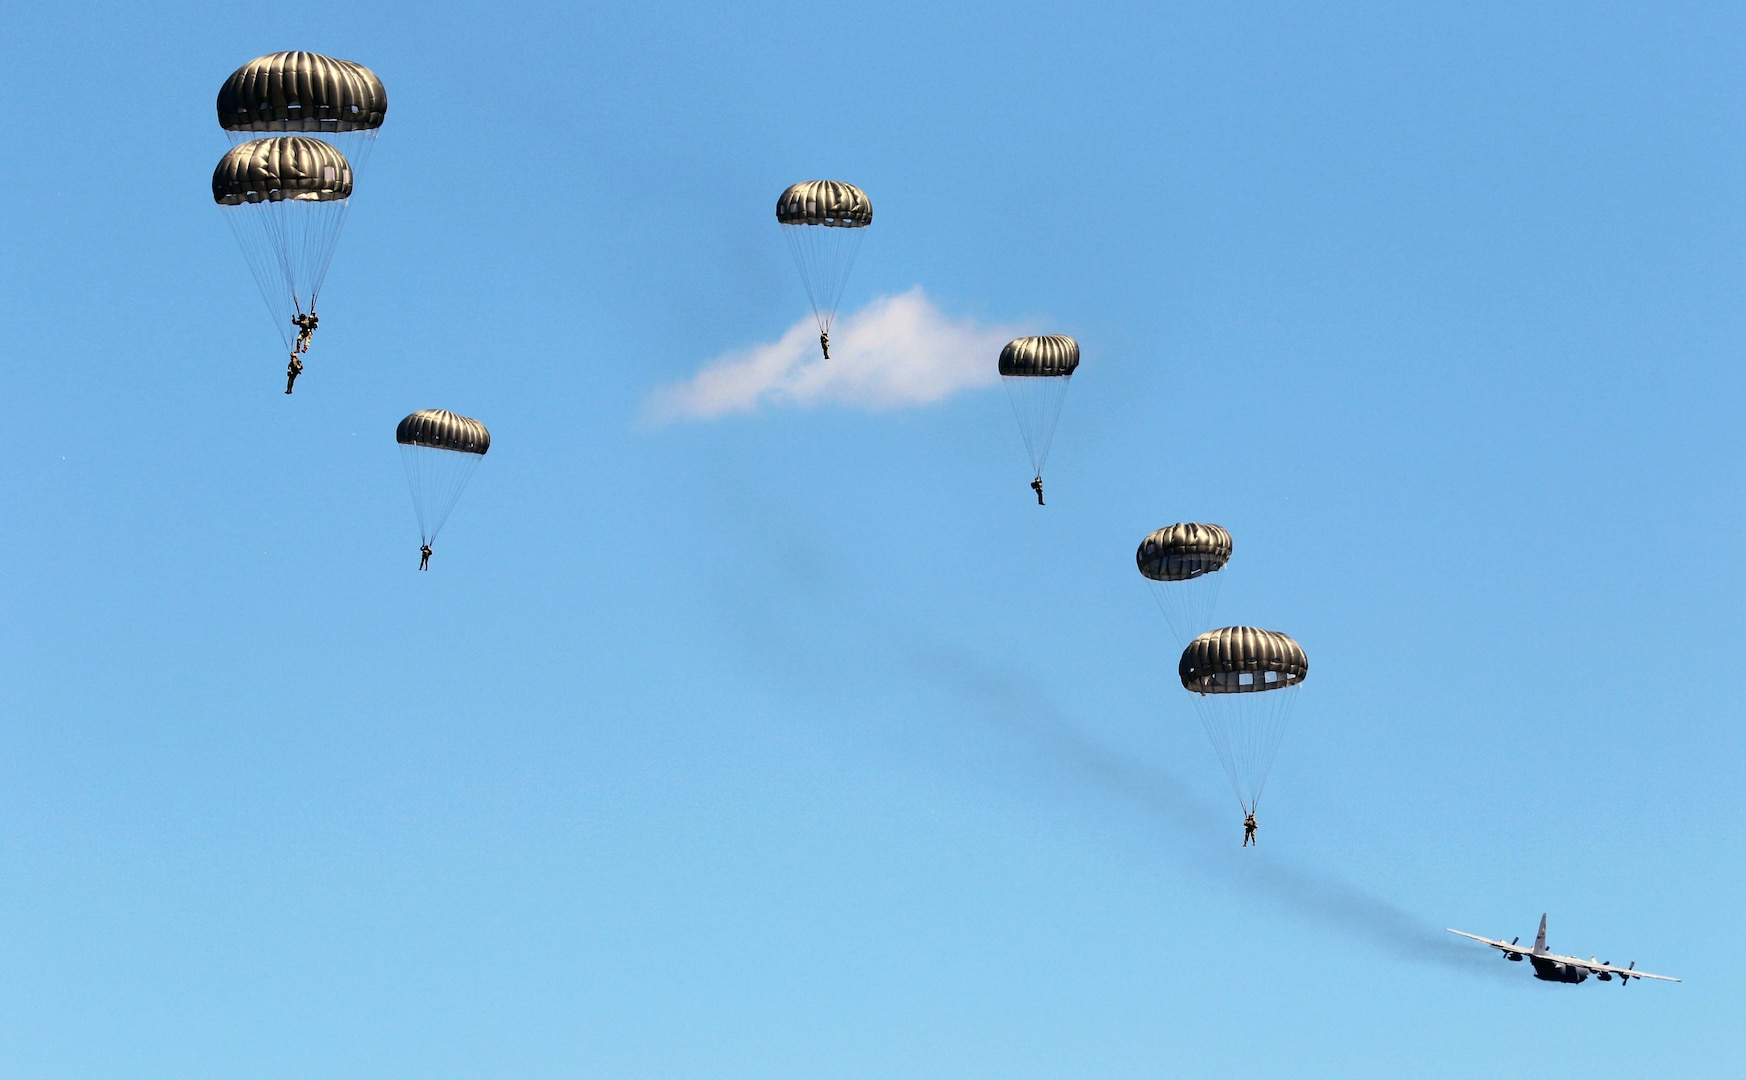 Soldiers with the 294th Quartermaster Company, 338th Quartermaster Company, Texas Army National Guard, the 3rd Special Forces Group, soldiers with the Latvian Army's Special Forces Group and British Army's 4th Battalion, Parachute Regiment (4 PARA), jump out of a C-130 Hercules aircraft over Camp Grayling Joint Maneuver Training Center, Grayling, Michigan, Aug. 13, 2021. The service members conducted joint airborne training during Northern Strike 21.